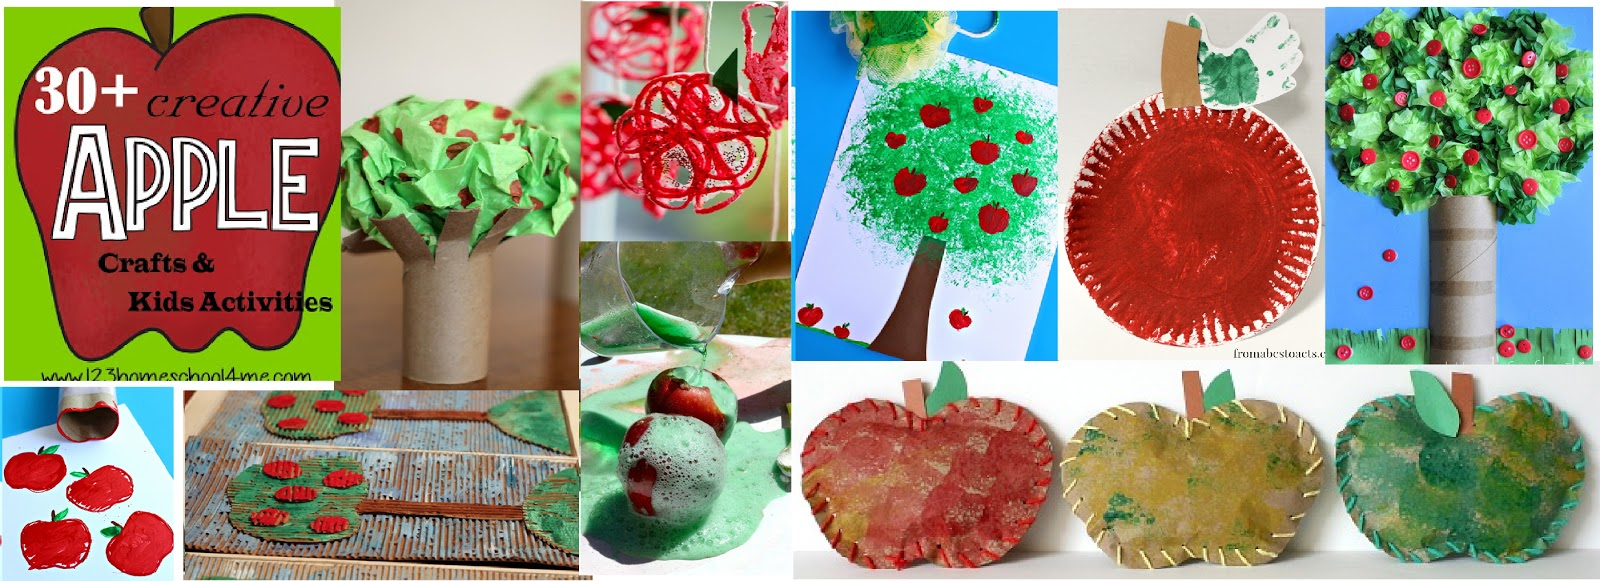 Christmas Craft Ideas For 5th Graders Part - 35: Apple Crafts For Kids